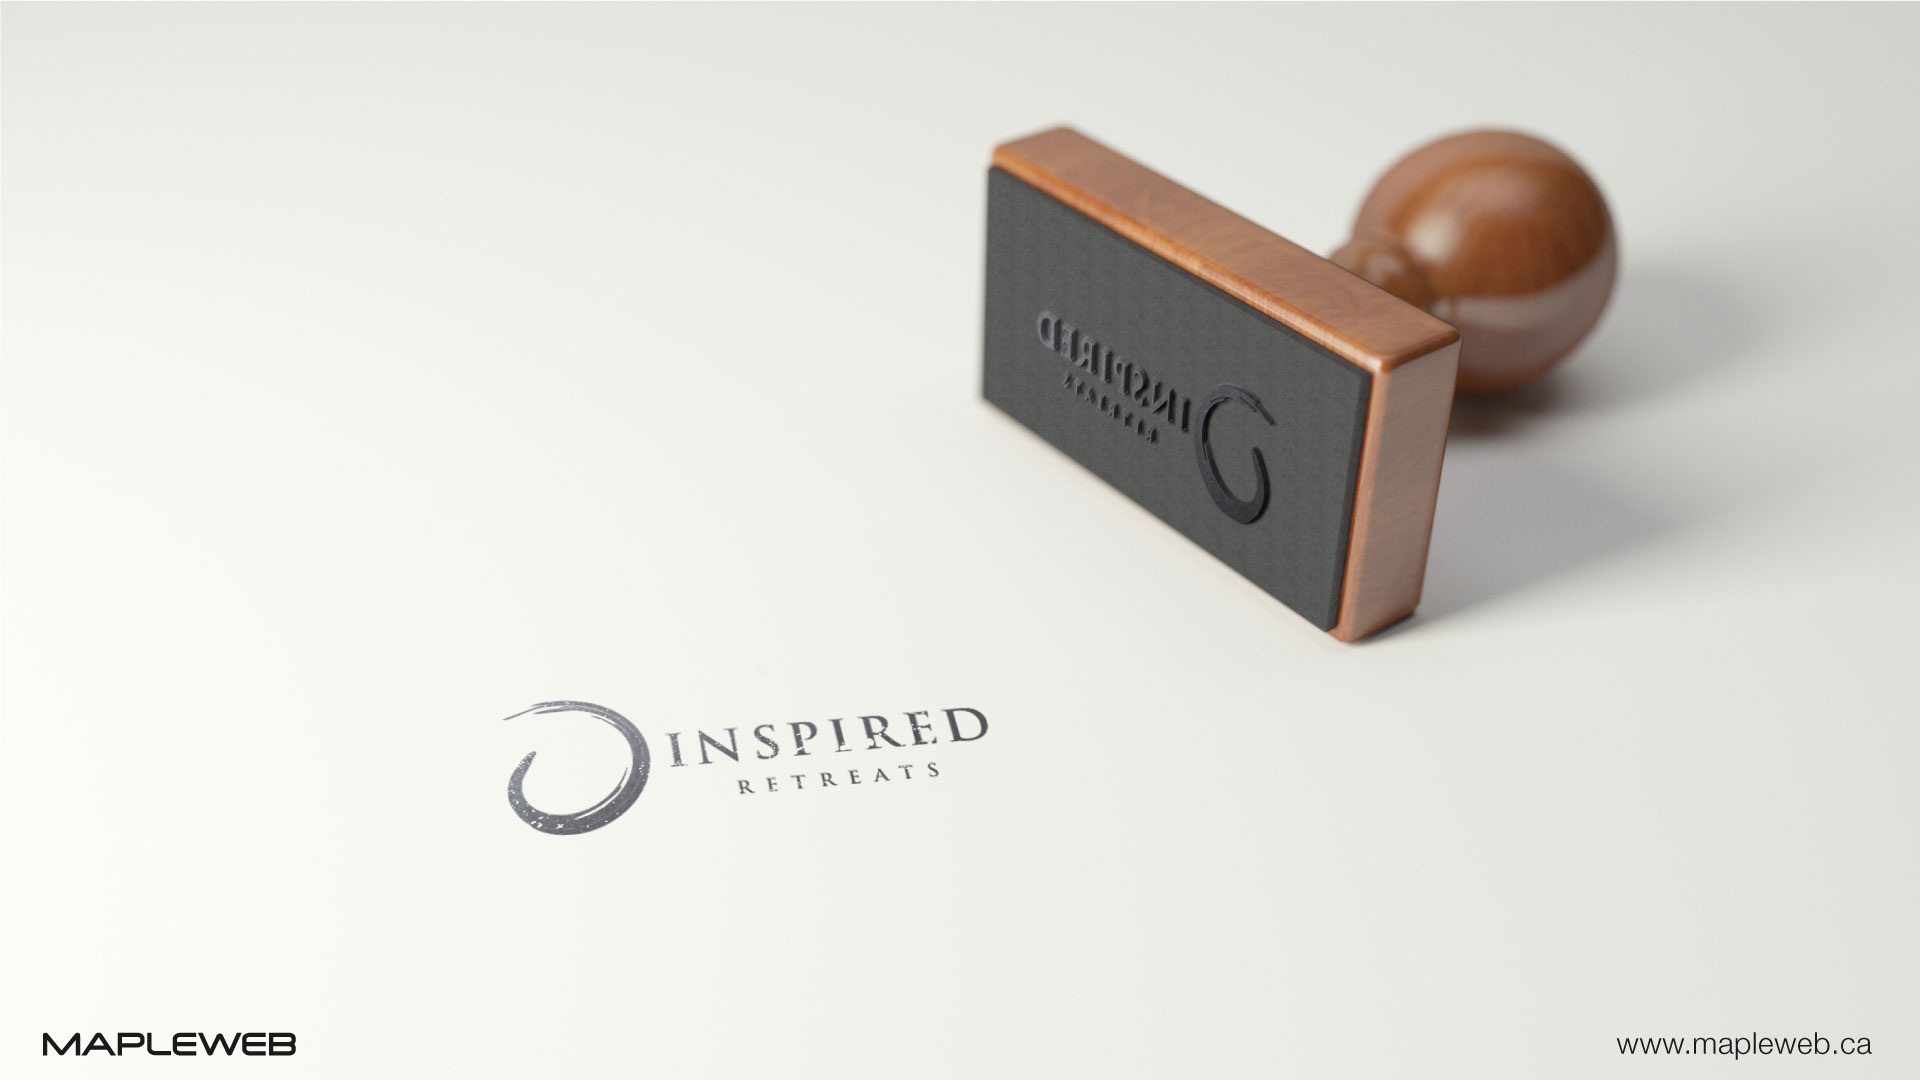 inspired-retreats-brand-logo-design-by-mapleweb-vancouver-canada-stamp-mock